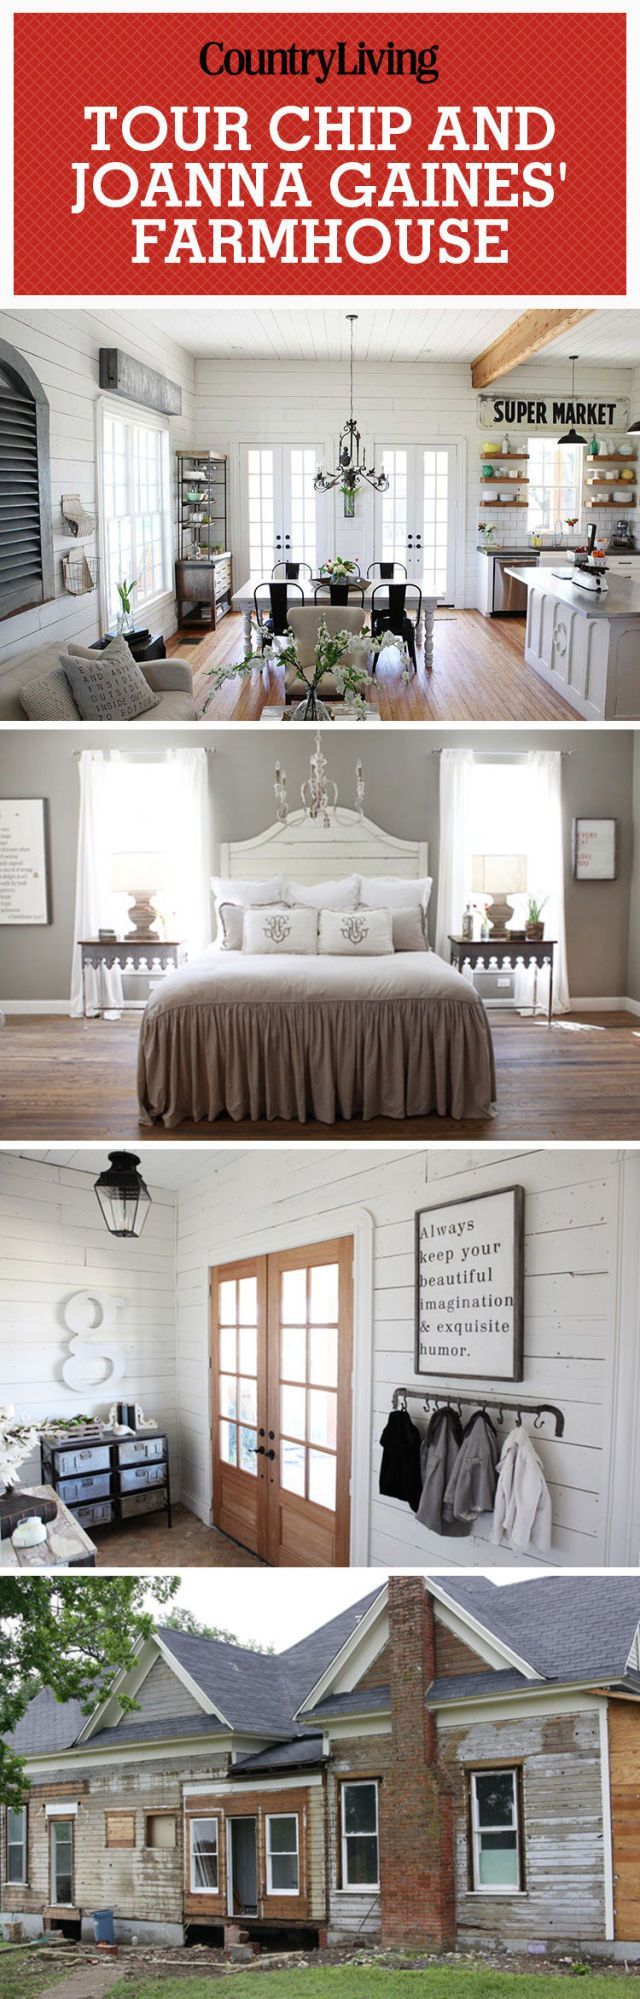 1000 images about house on pinterest farmhouse. Black Bedroom Furniture Sets. Home Design Ideas